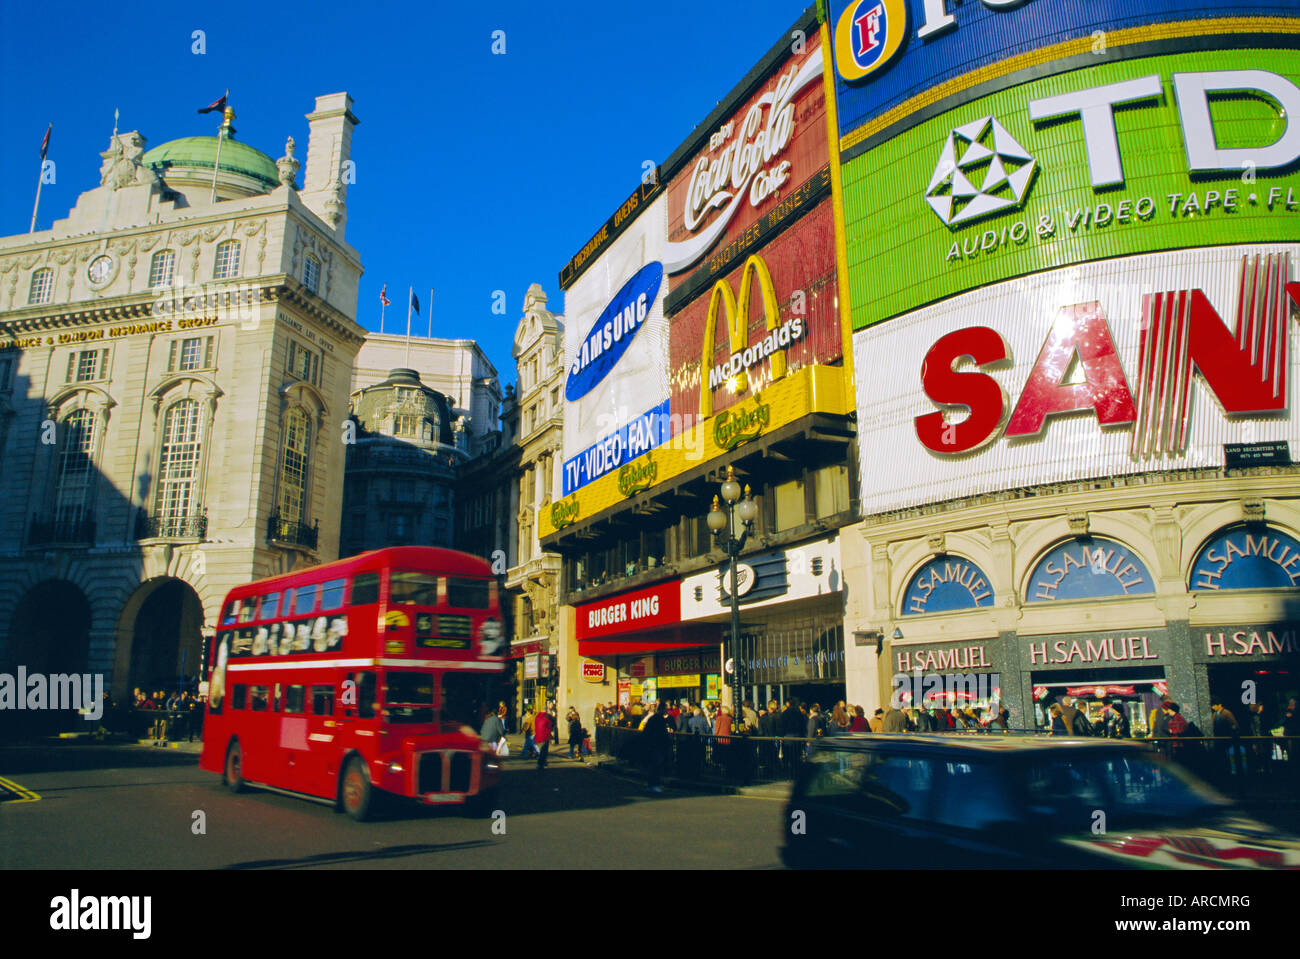 Double decker bus and advertisements, Piccadilly Circus, London, England, UK - Stock Image